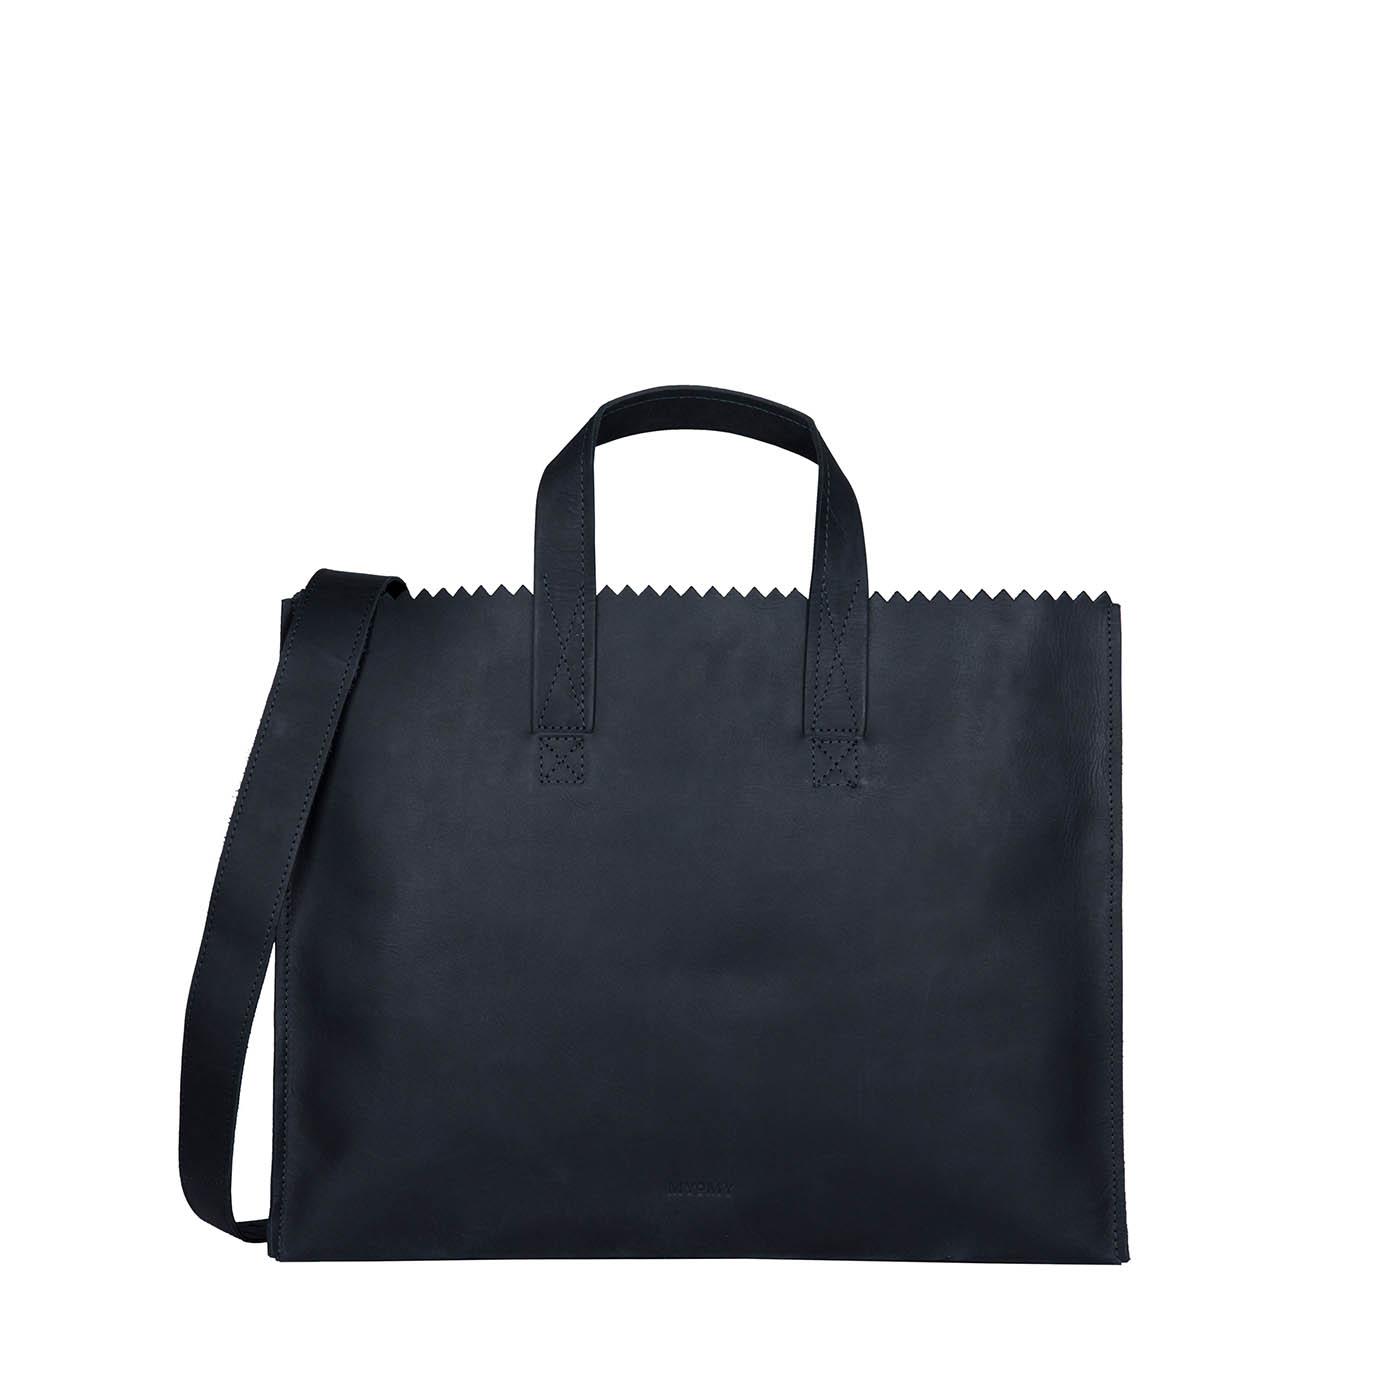 MY PAPER BAG Business bag – hunter off-black